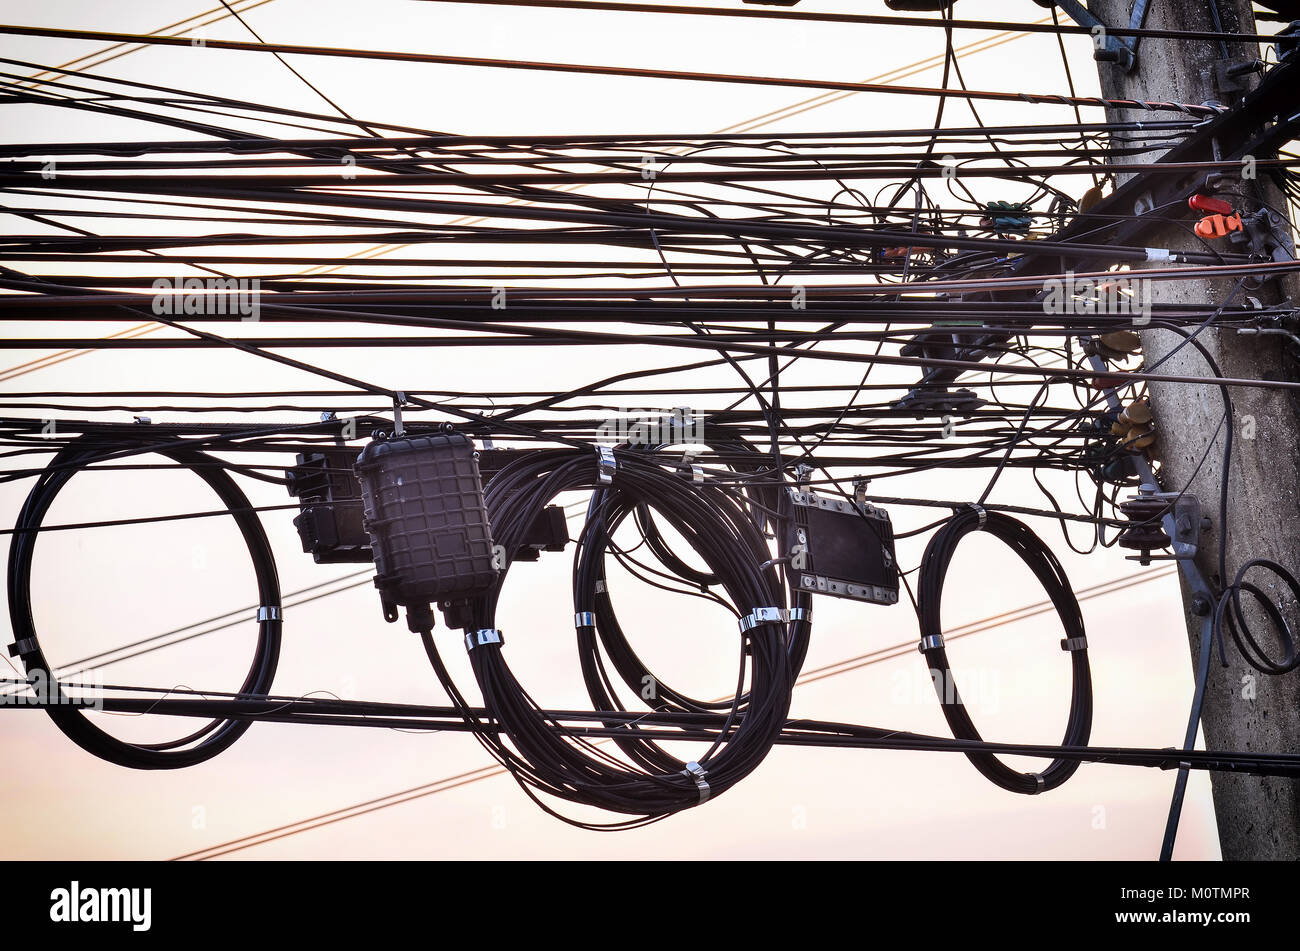 Cable Chaos Chaotic Stock Photos & Cable Chaos Chaotic Stock Images ...